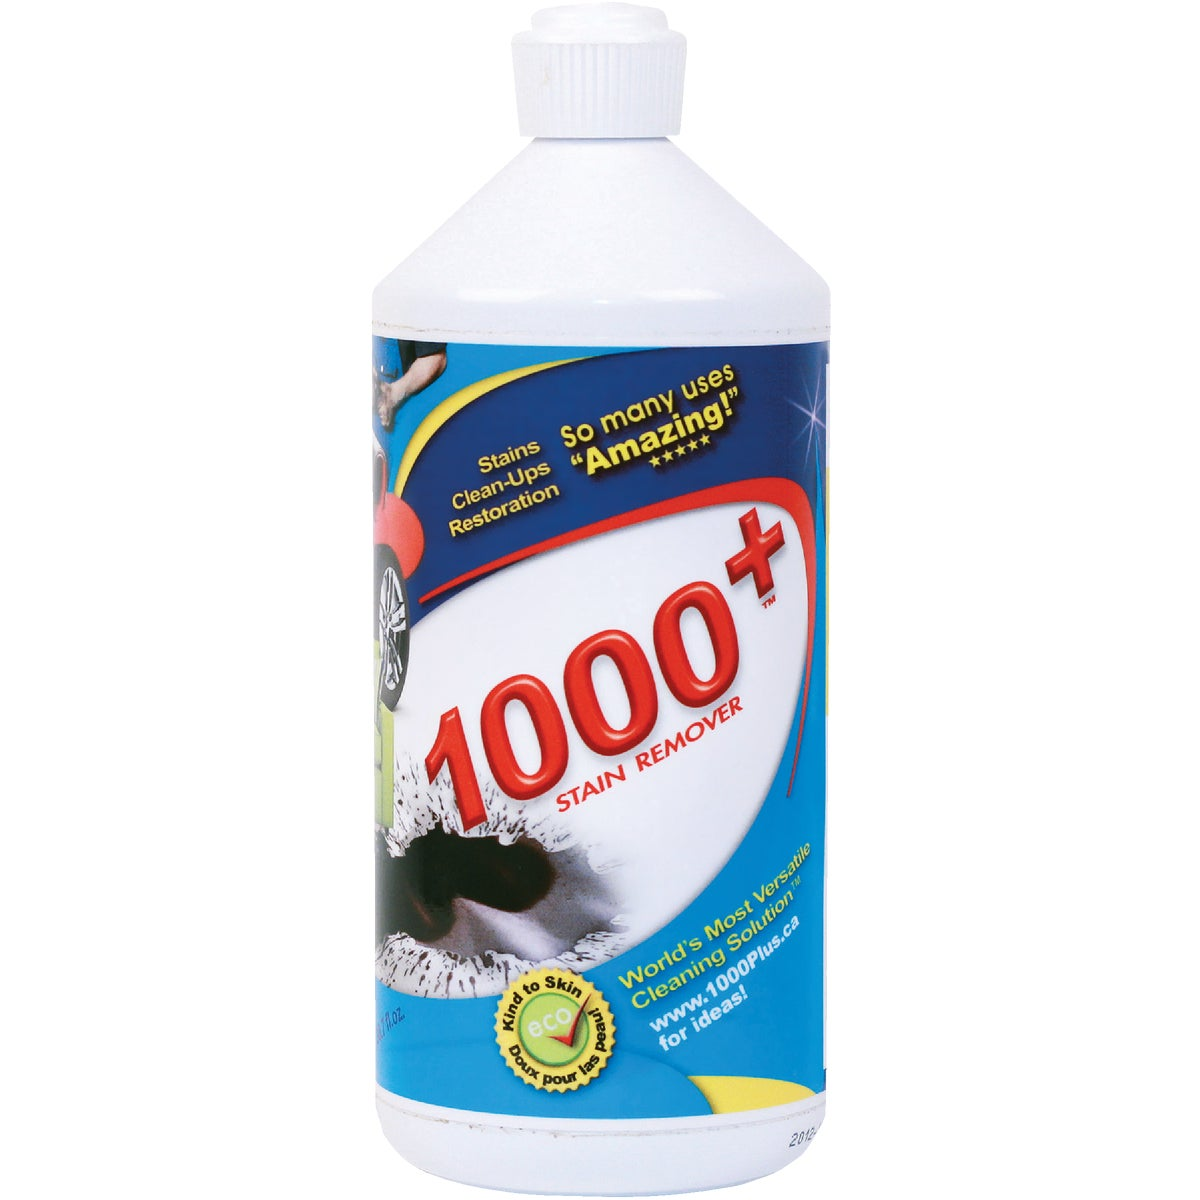 30.7 1000+ STAIN REMOVER